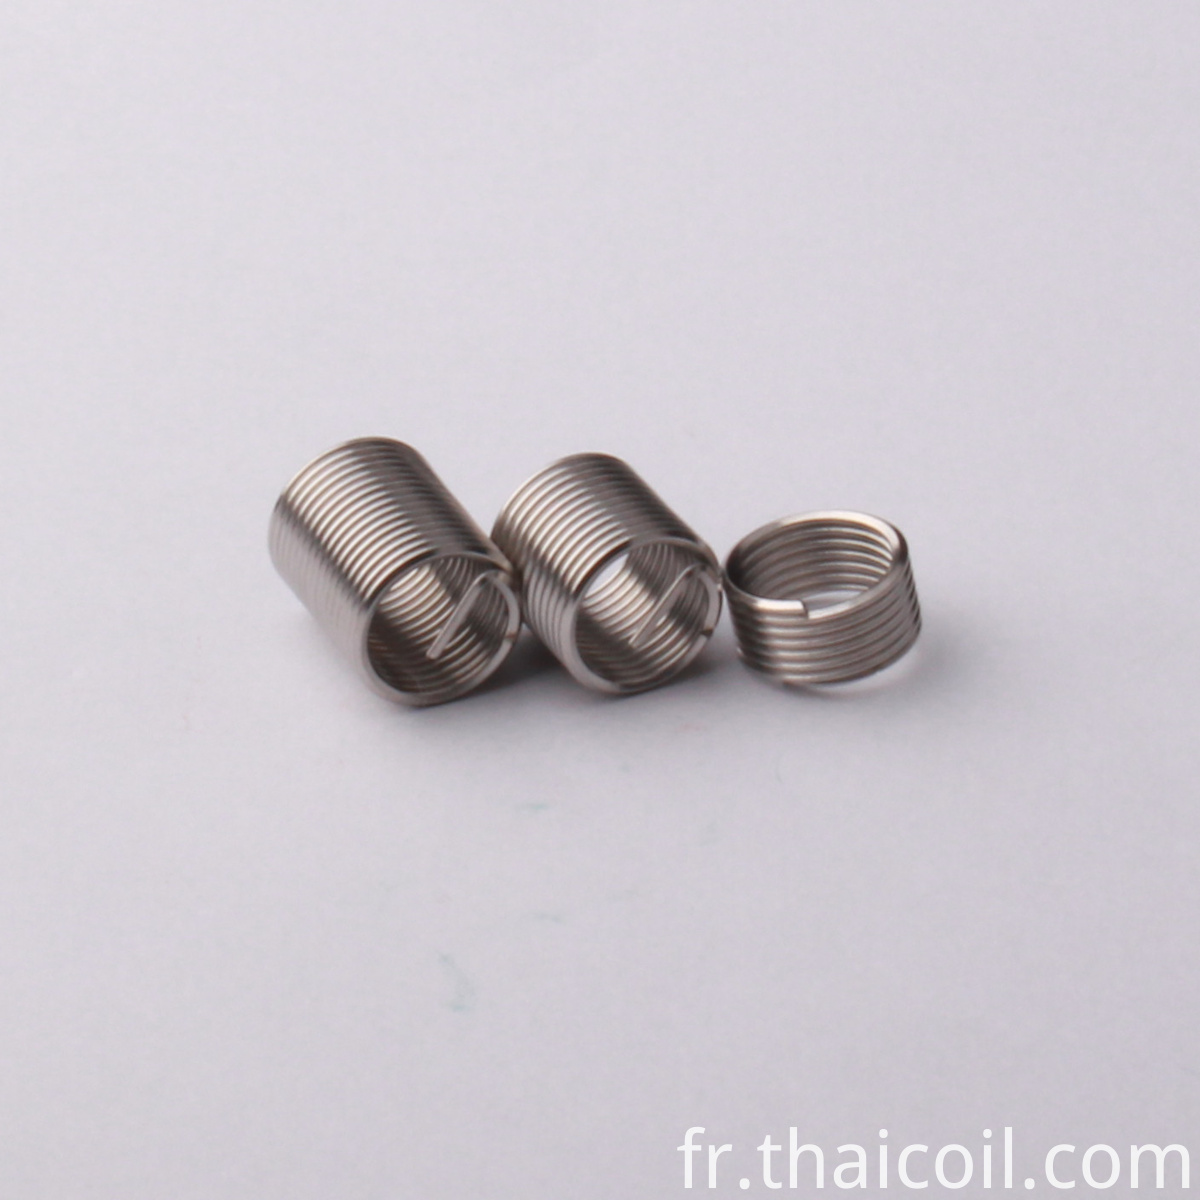 6x1 Screw Thread Insert